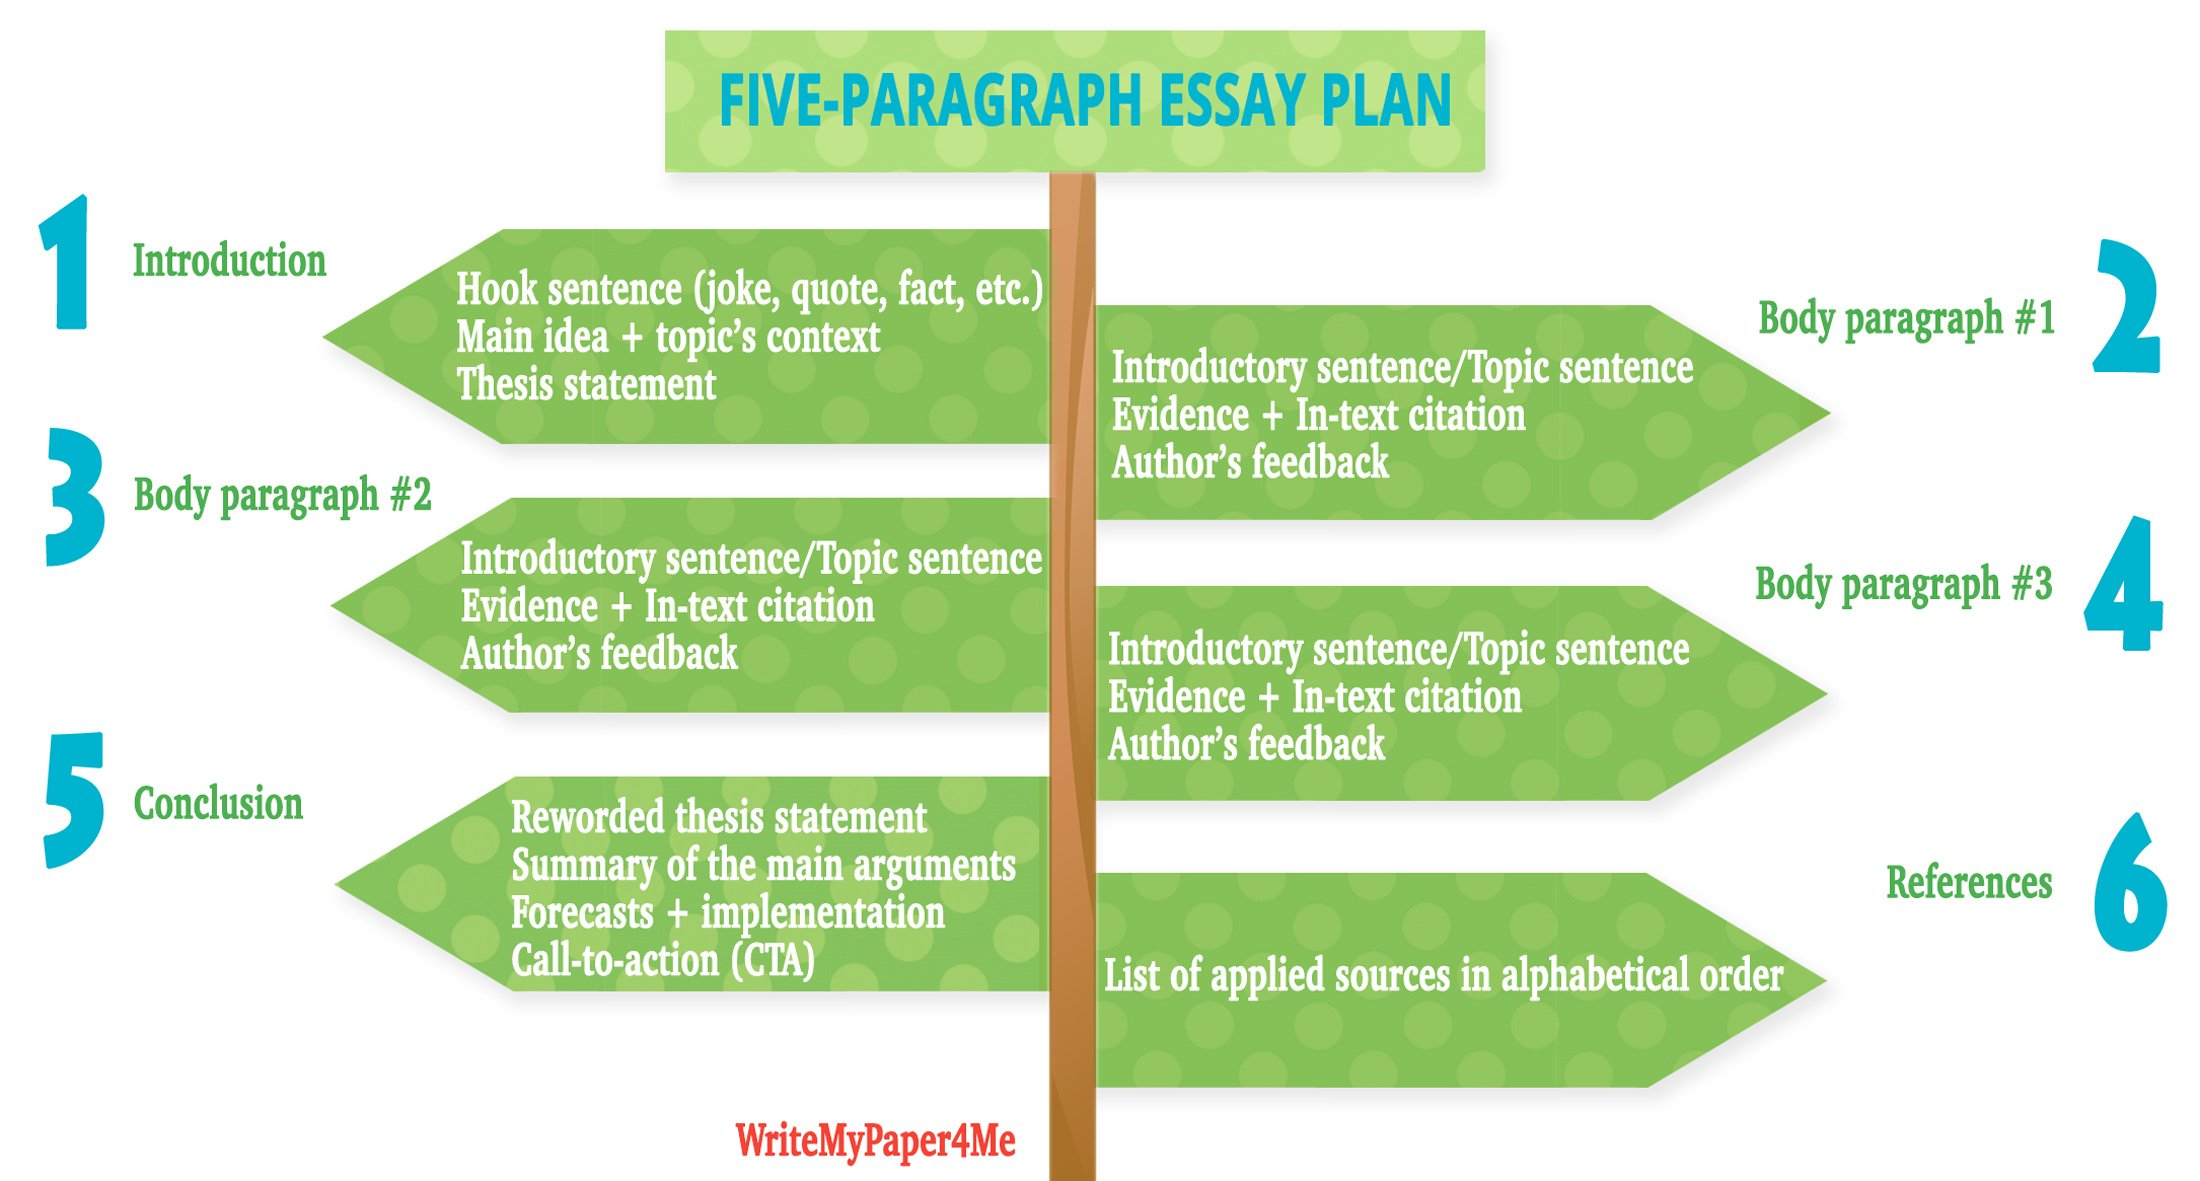 good 5 paragraph essay Here are simple formulas to write the 5-basic academic essay the 5-paragraph essay is a standard way to write most essays the 5-paragraph essay has an introduction, 3 body paragraphs, and a conclusion.